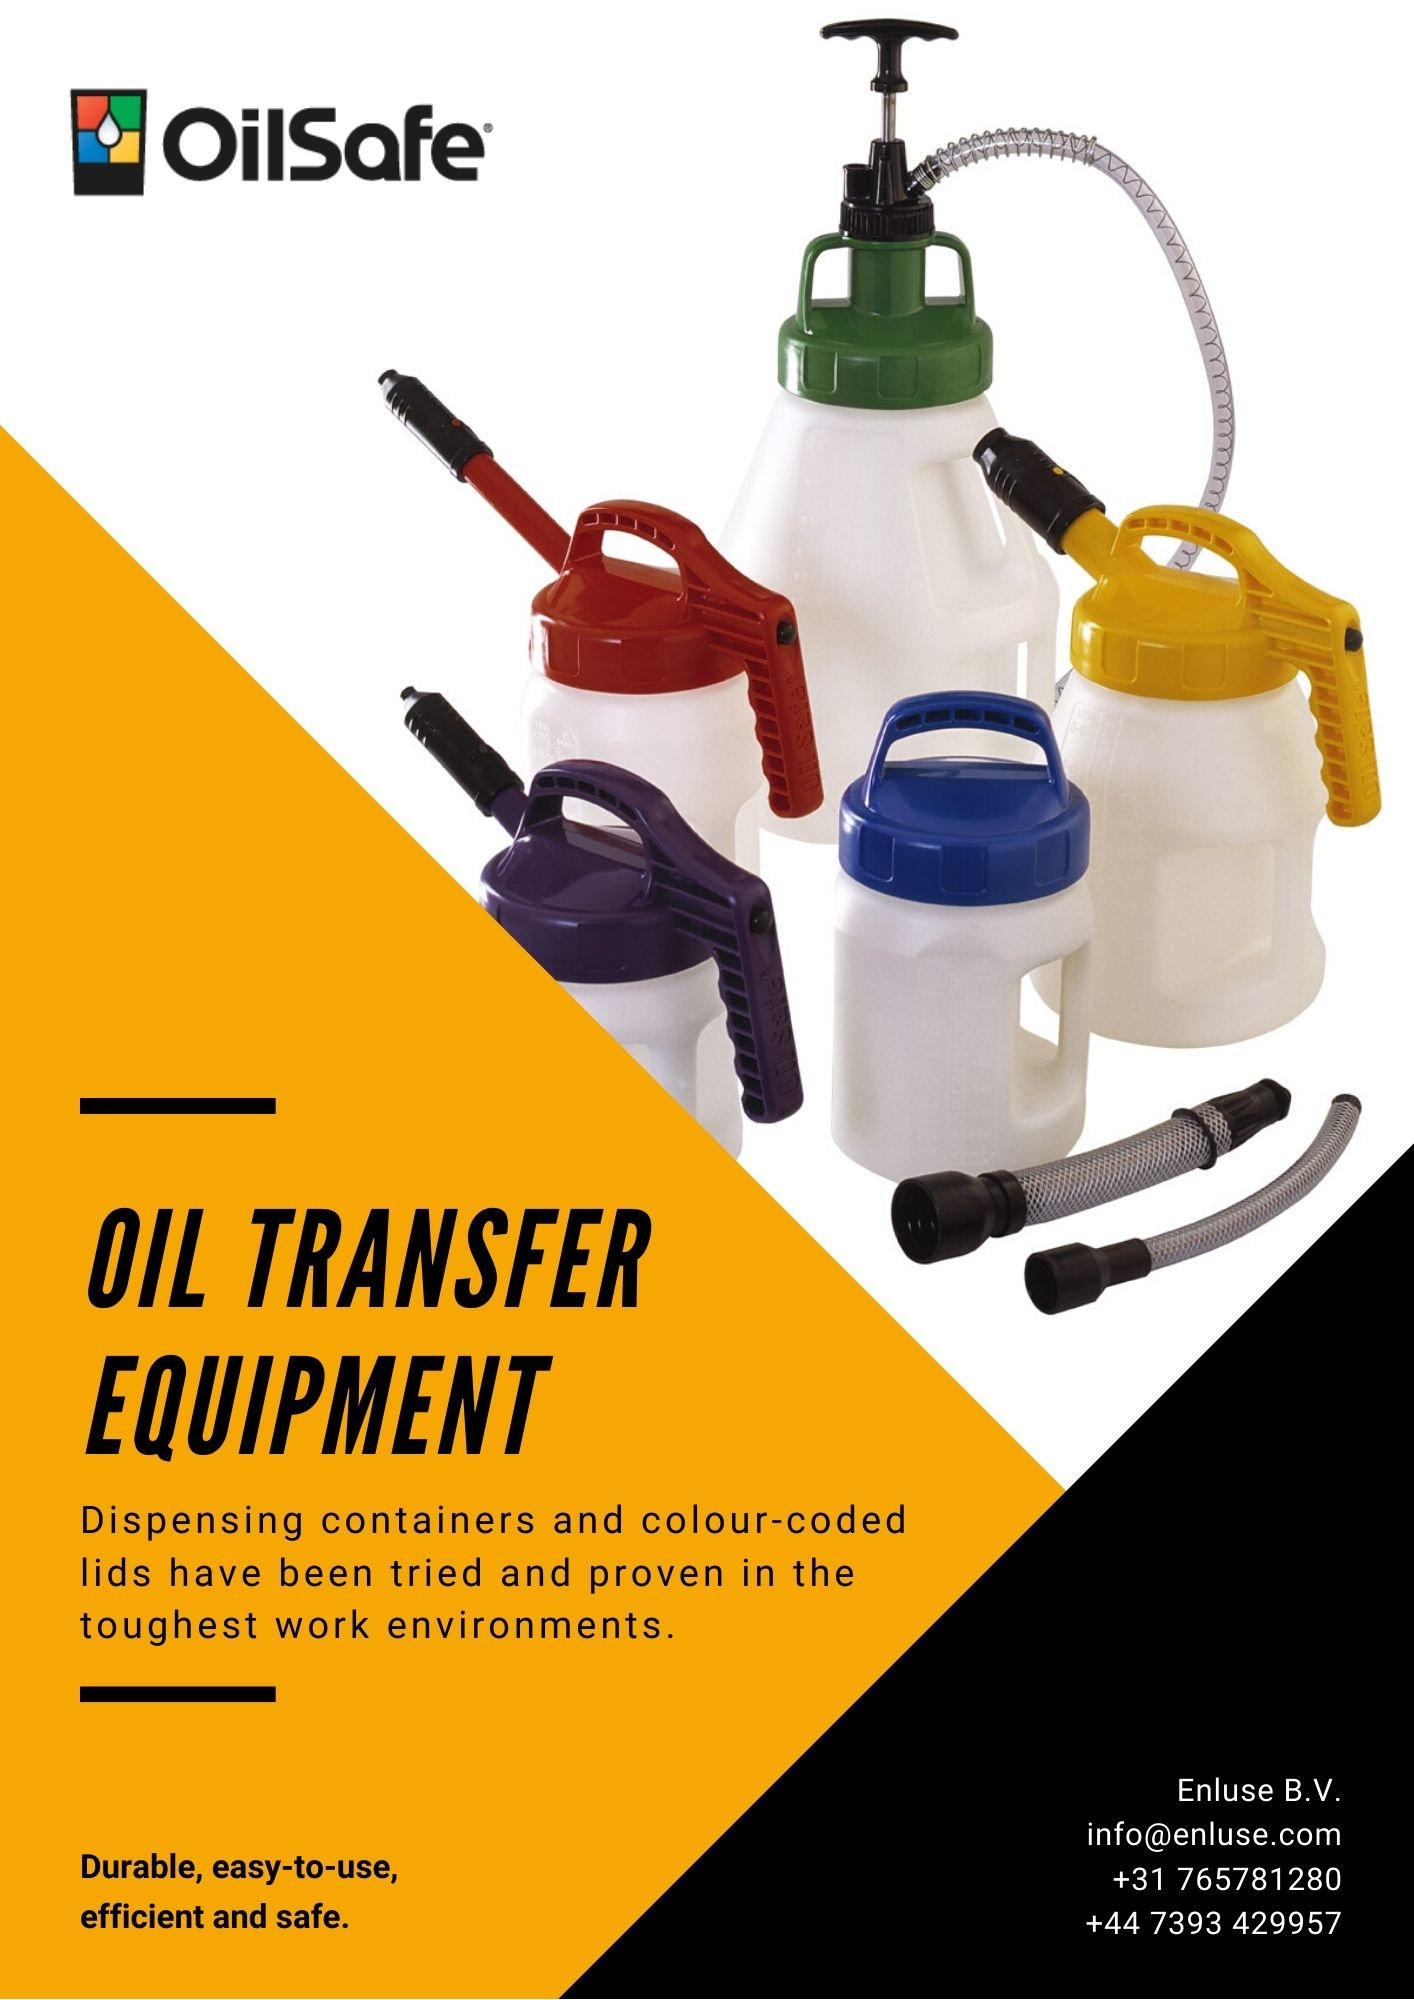 Oil Transfer Equipment OilSafe